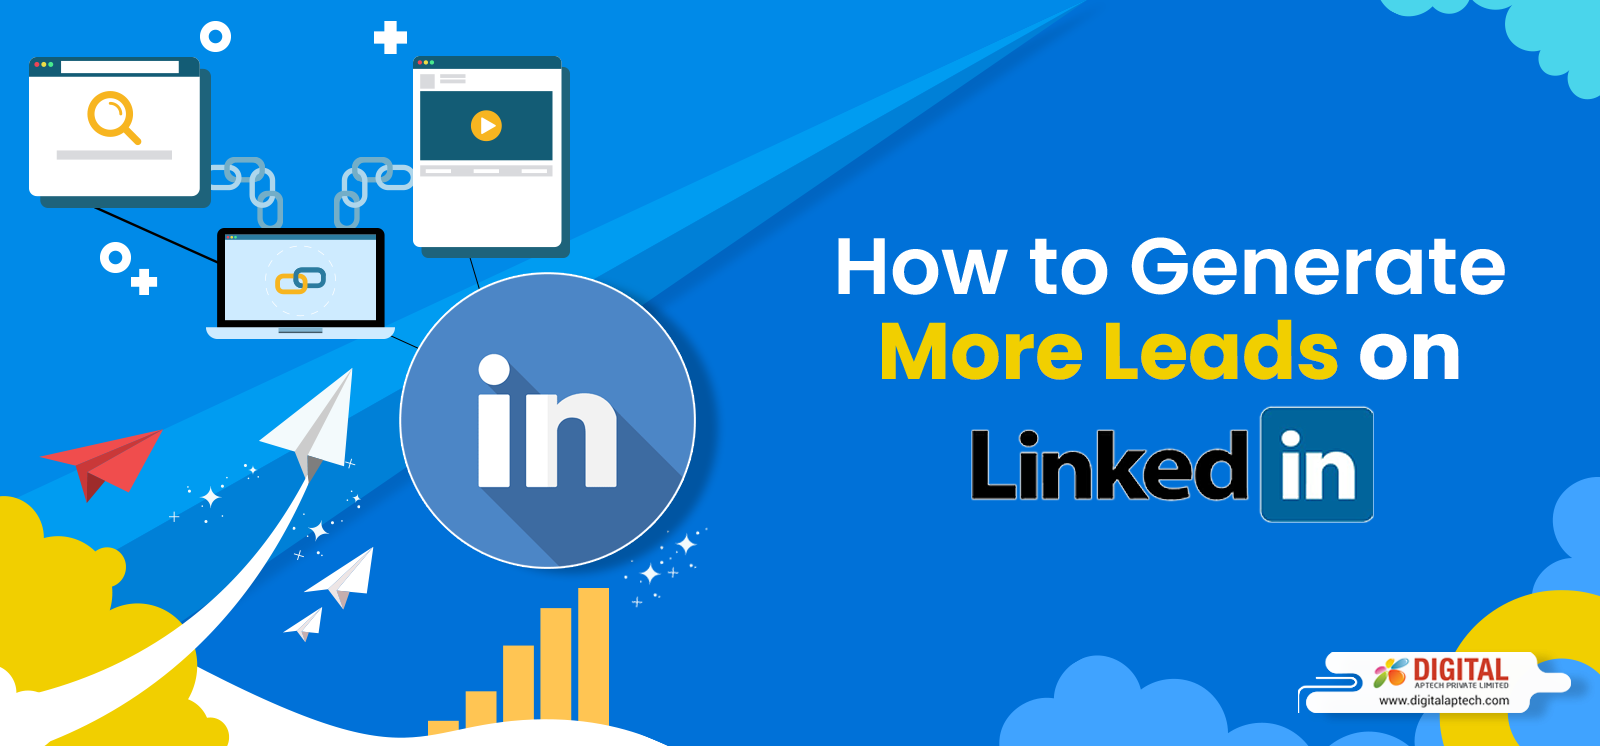 Ways You Can Generate More Leads on LinkedIn